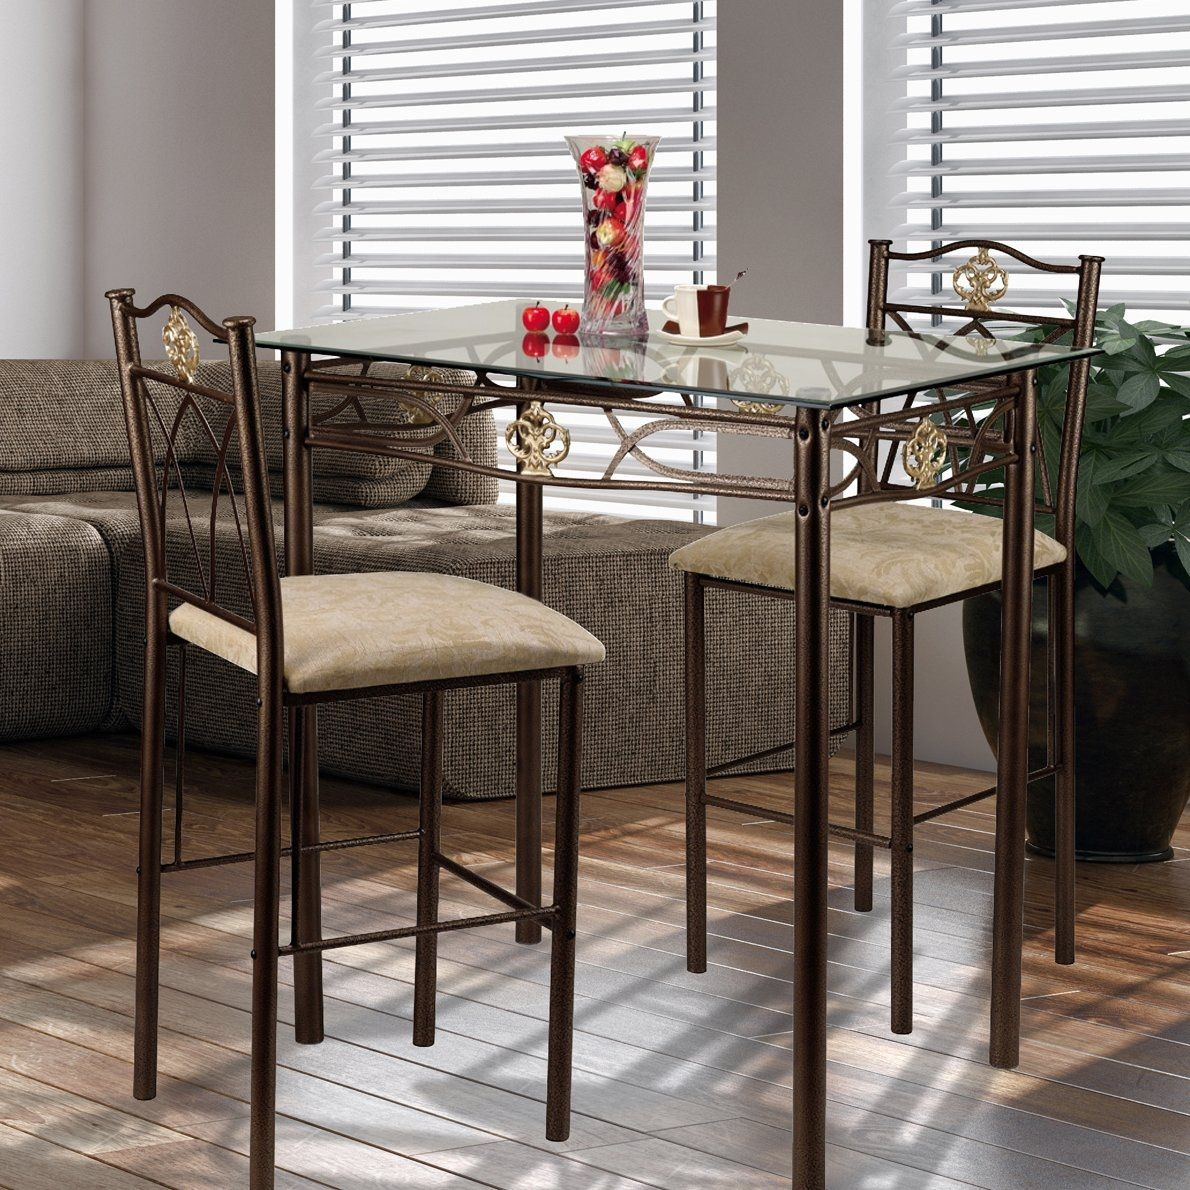 Hazelwood Home Barcelona 3 Piece Counter Height Pub Table Set | http ...